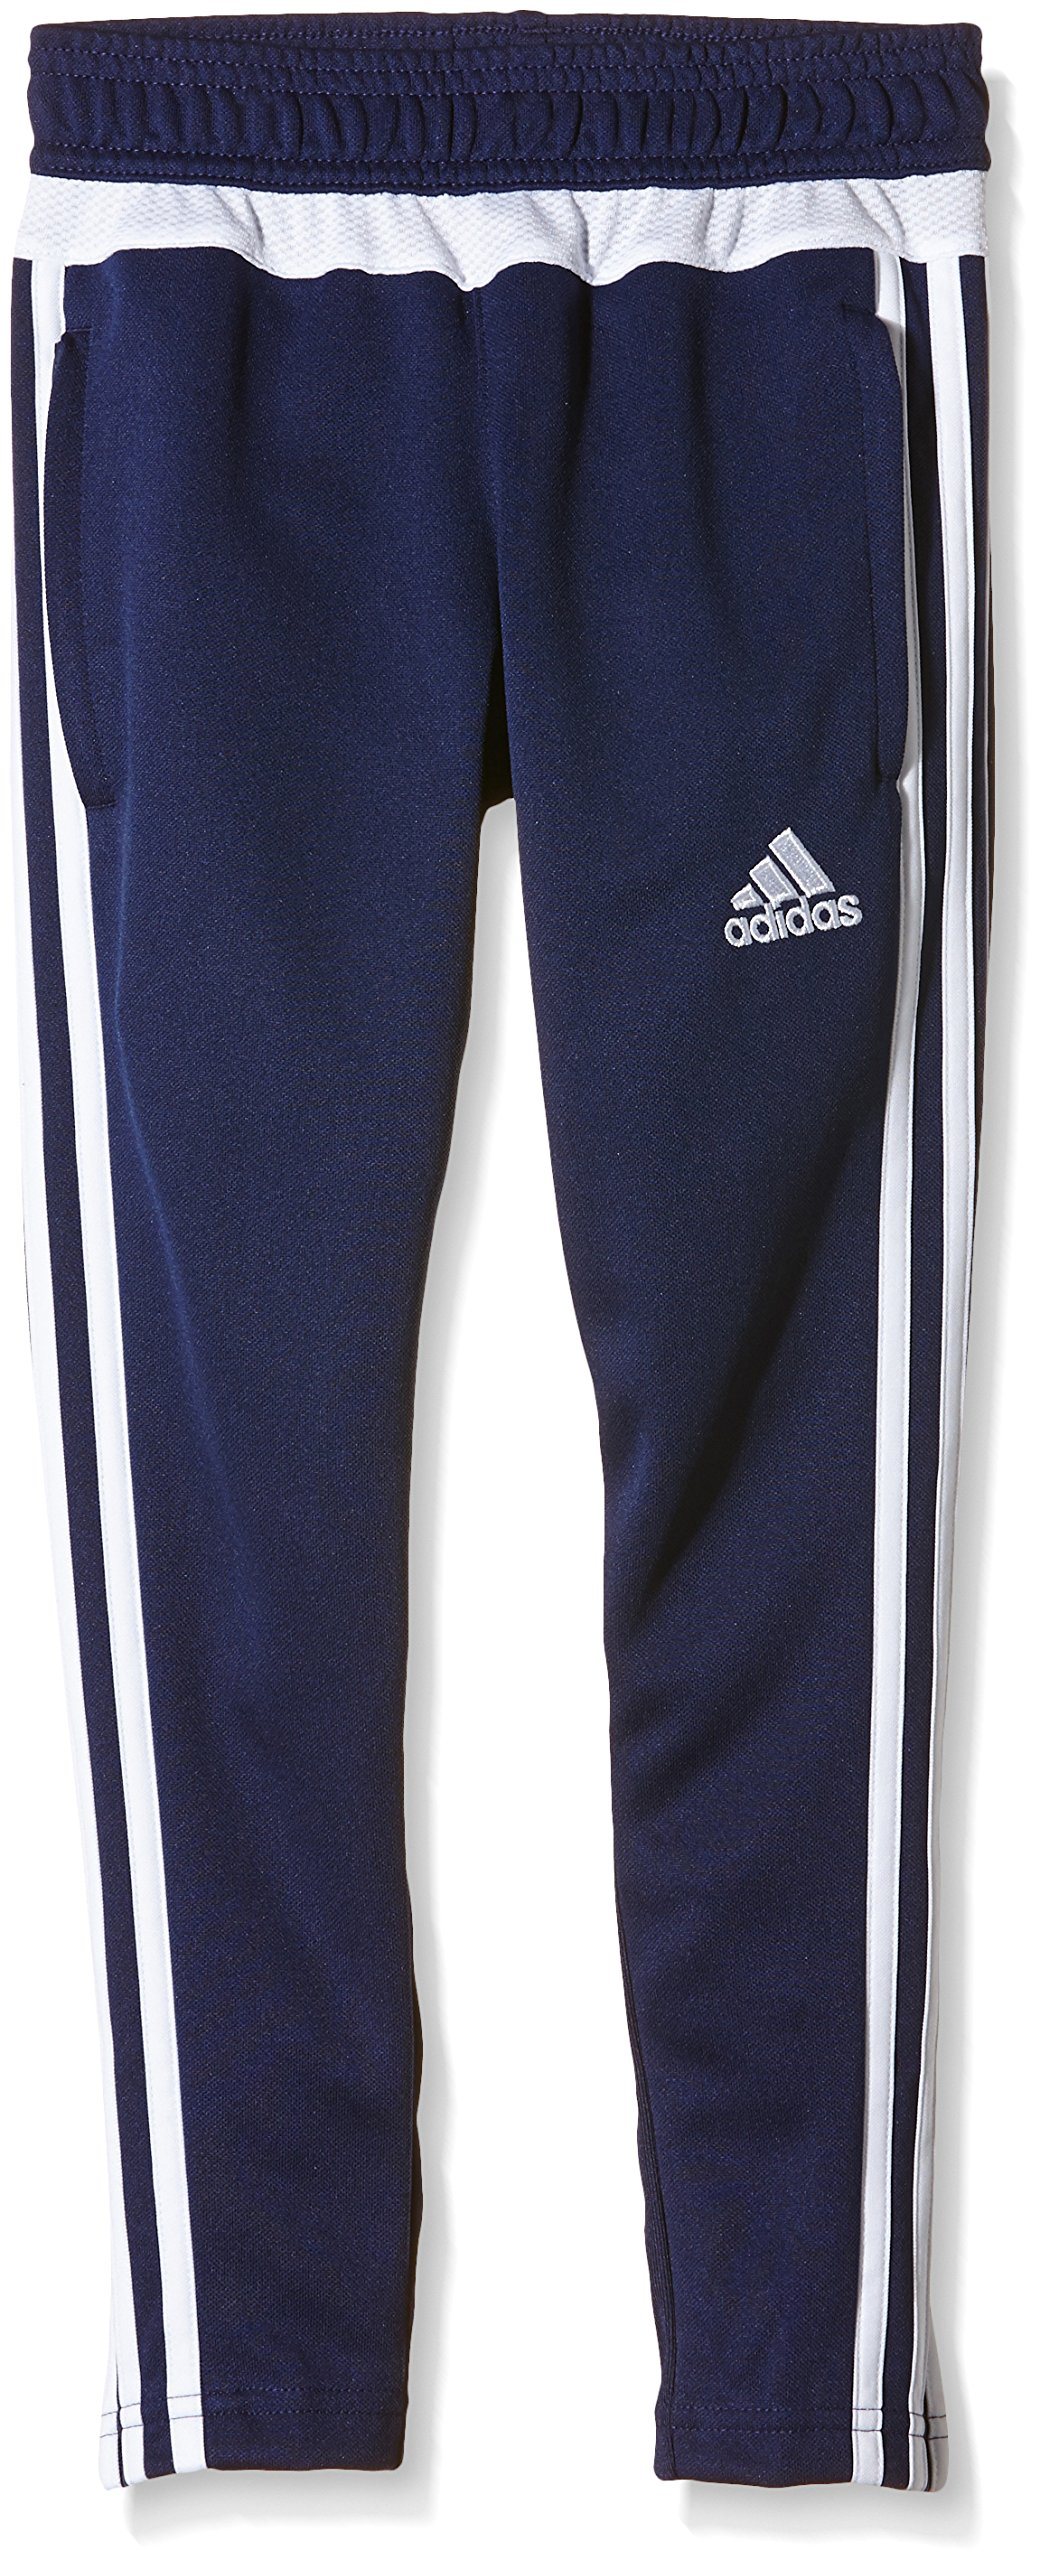 adidas Tiro 15 Training Skinny Pants (Youth) - Navy Blue/White - Age 13-14 by adidas (Image #1)